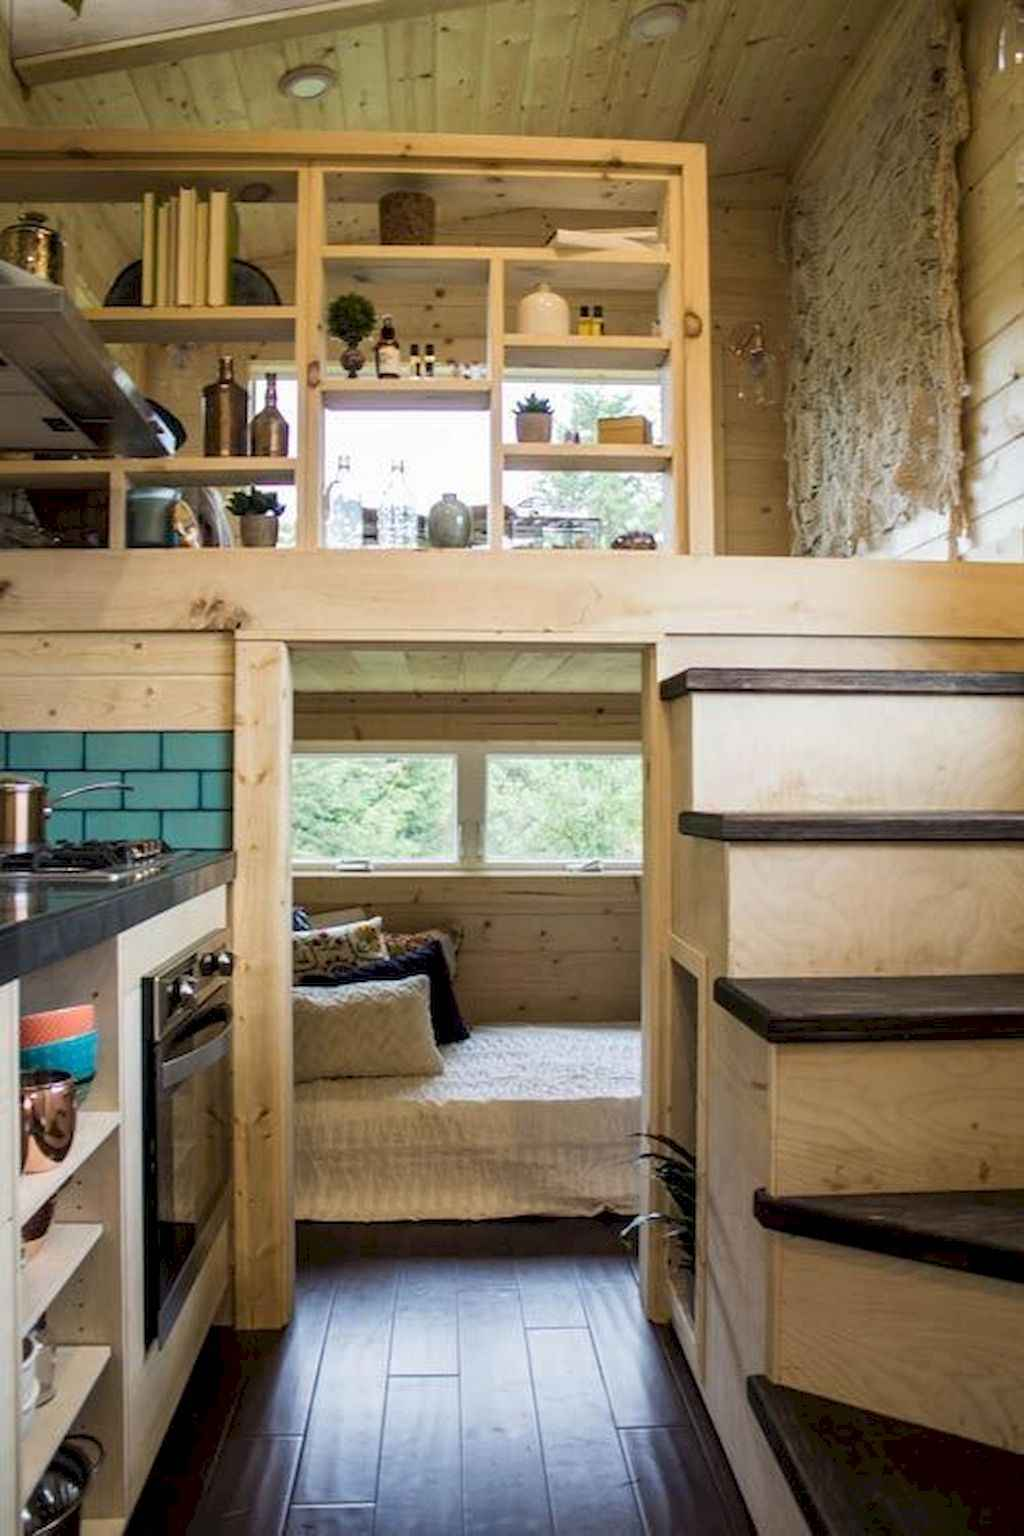 65 Space Saving Tiny House Storage Organization and Tips Ideas